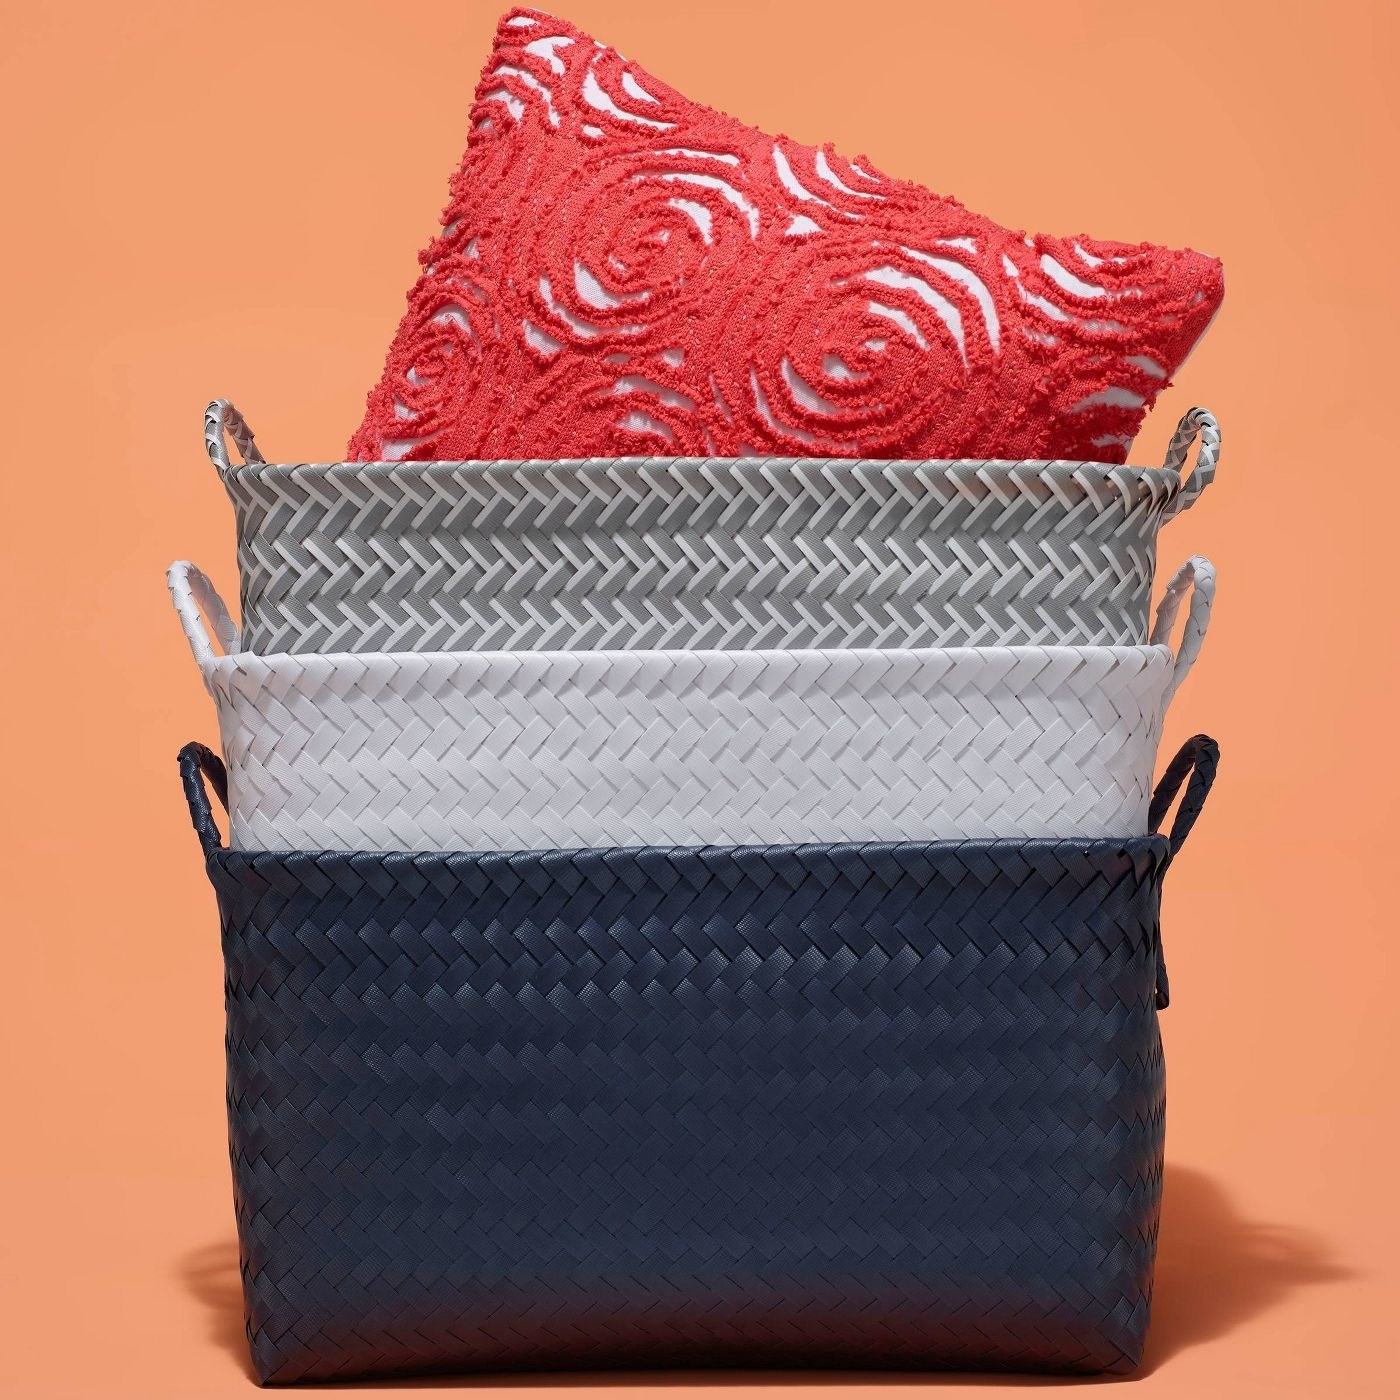 A blue, grey and white basket with a red pillow inside